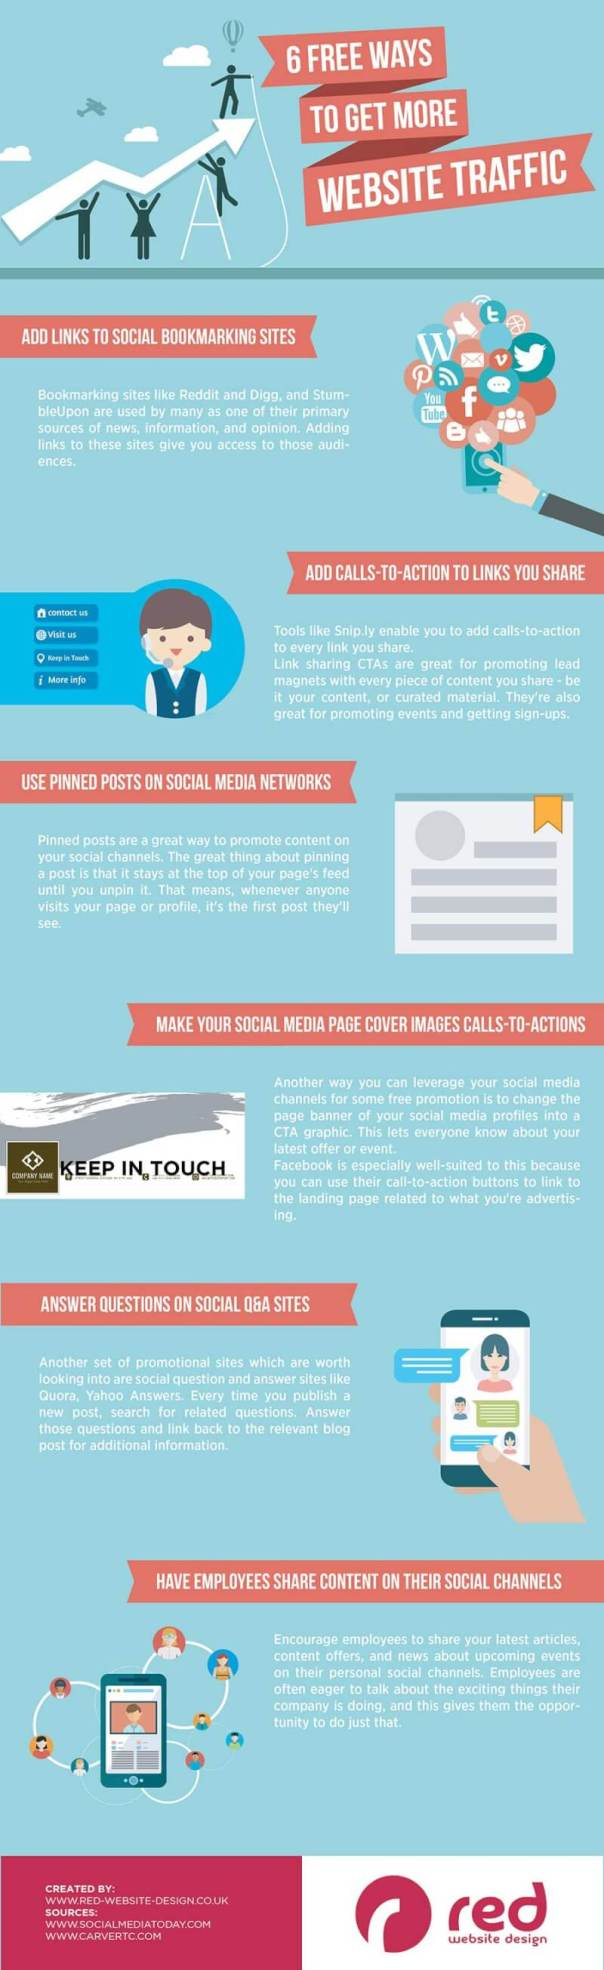 6-Ways-to-Get-More-Traffic-infographic